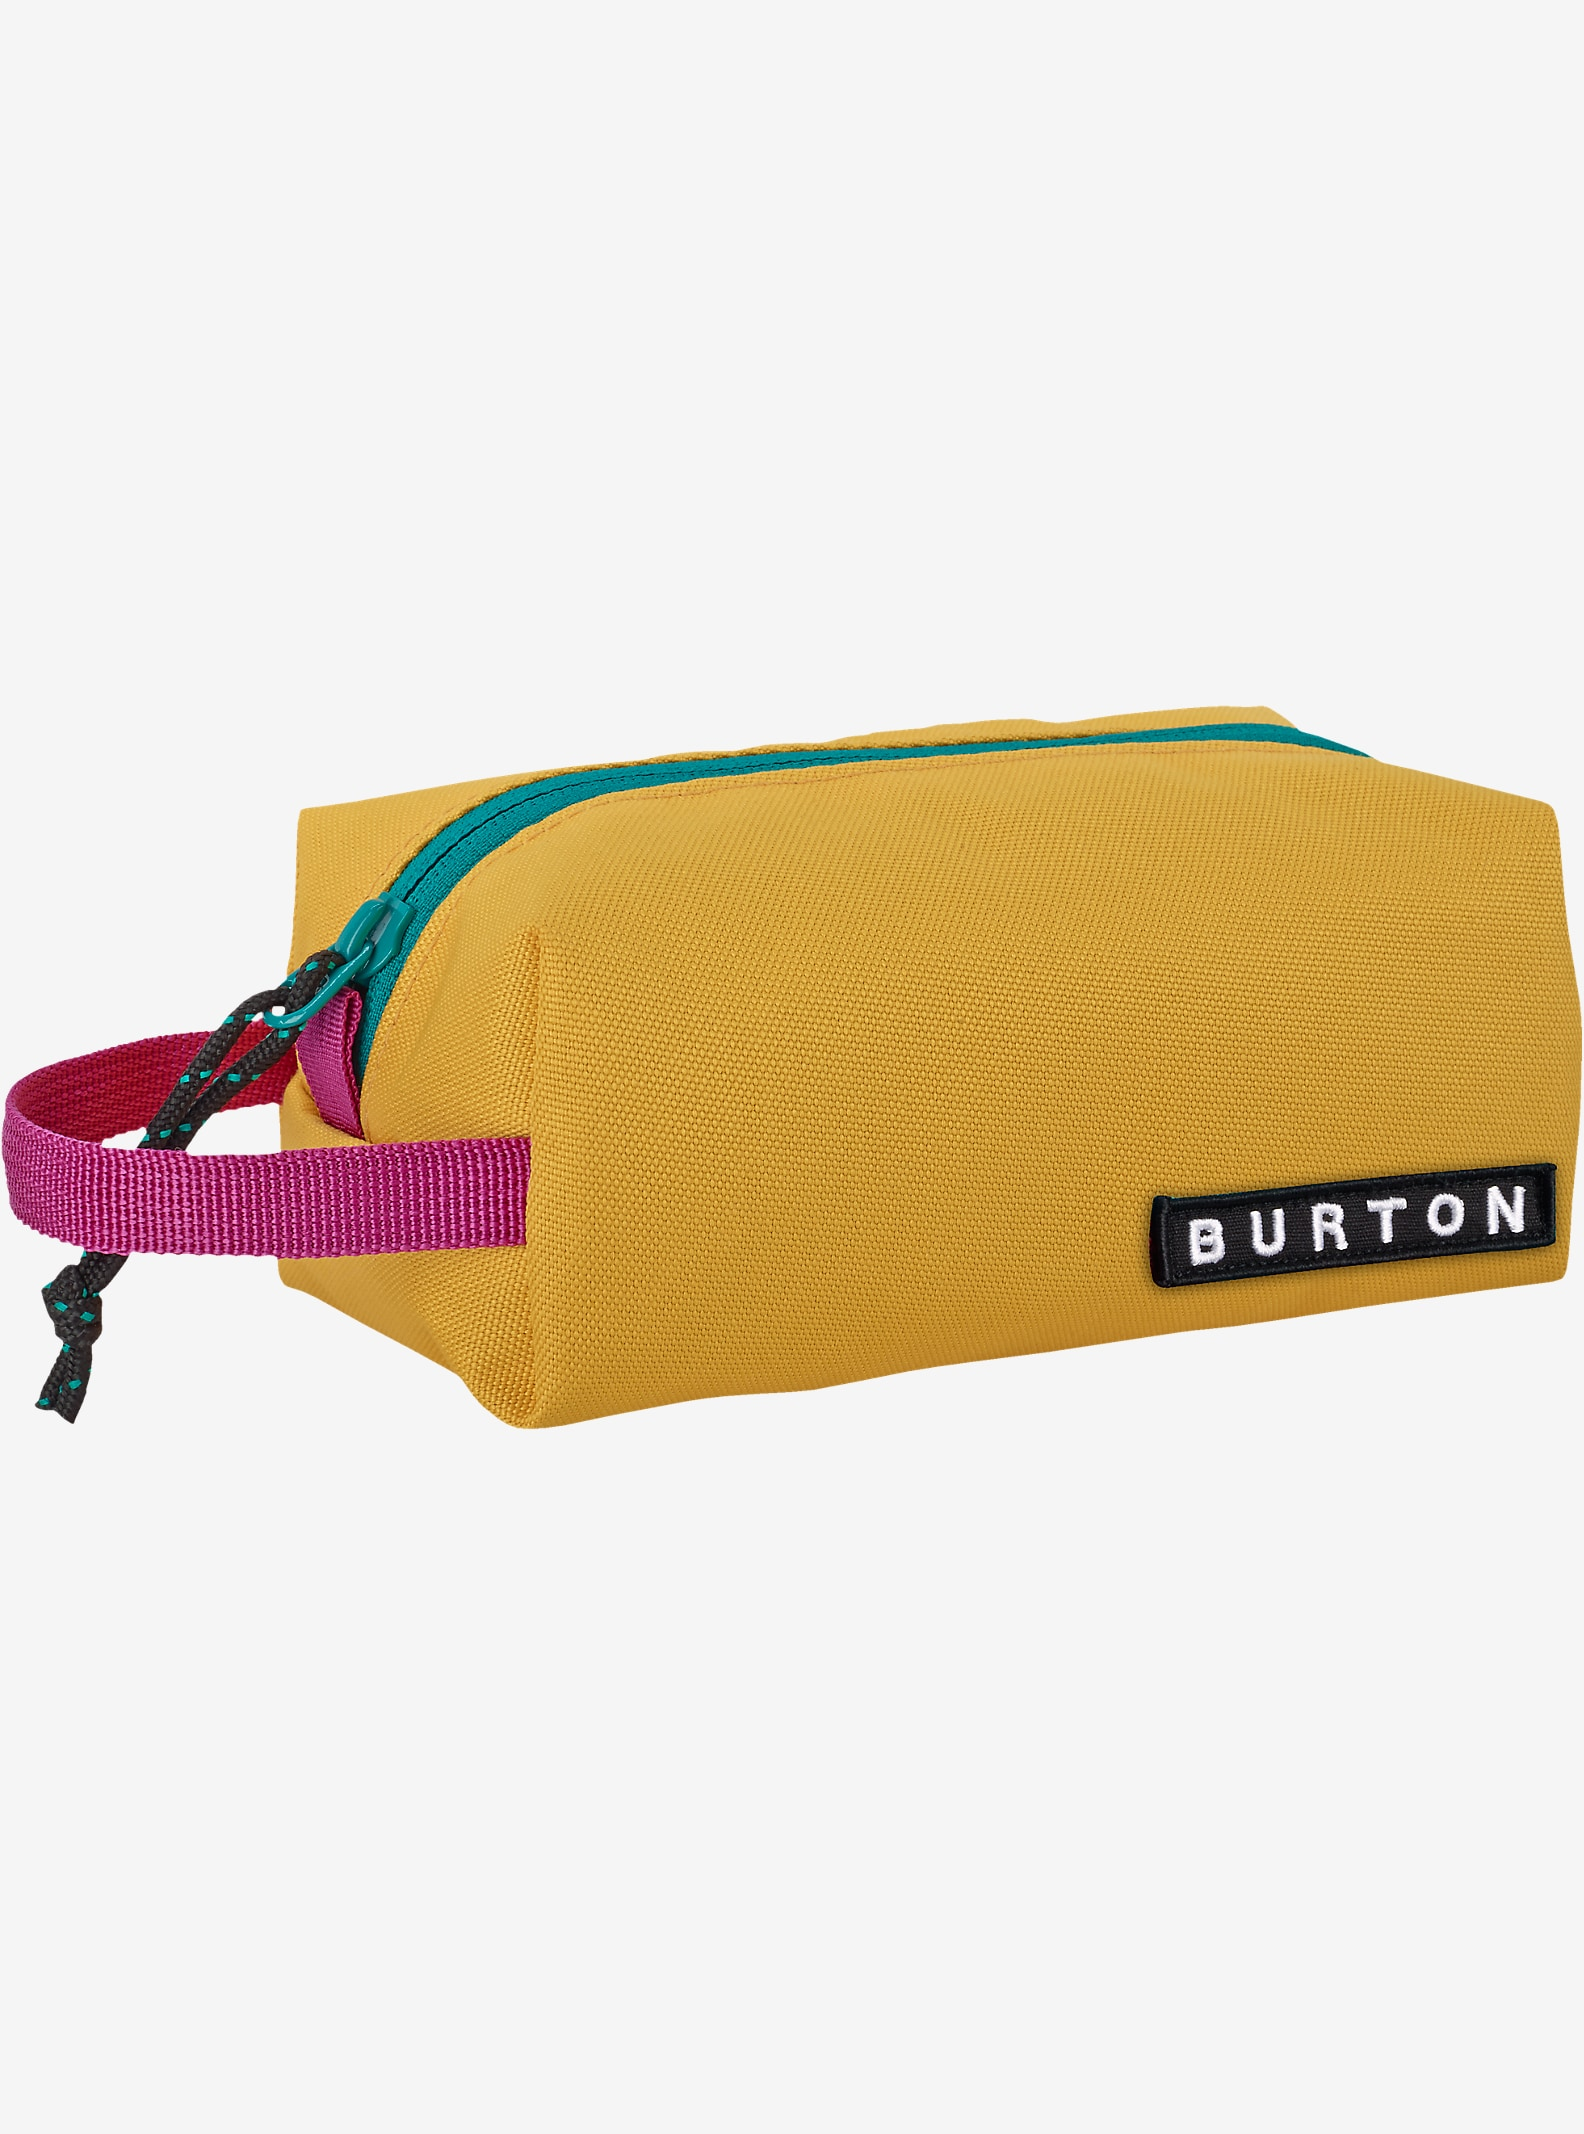 Burton Accessory Case shown in Golden Haze